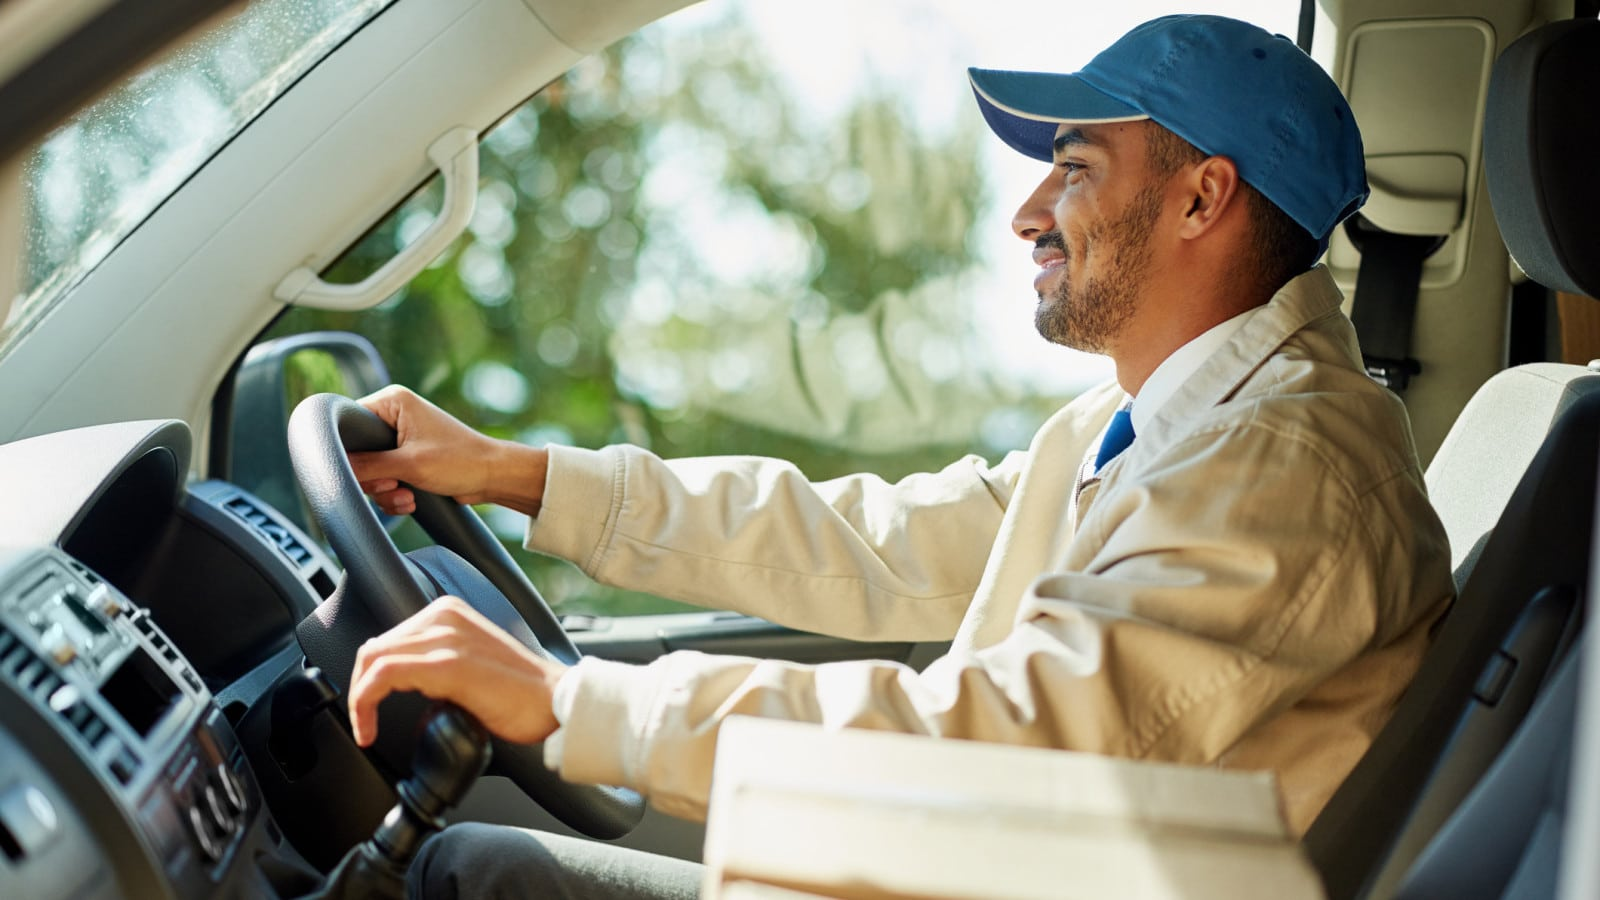 Delivery Driver Making Deliveries Stock Photo